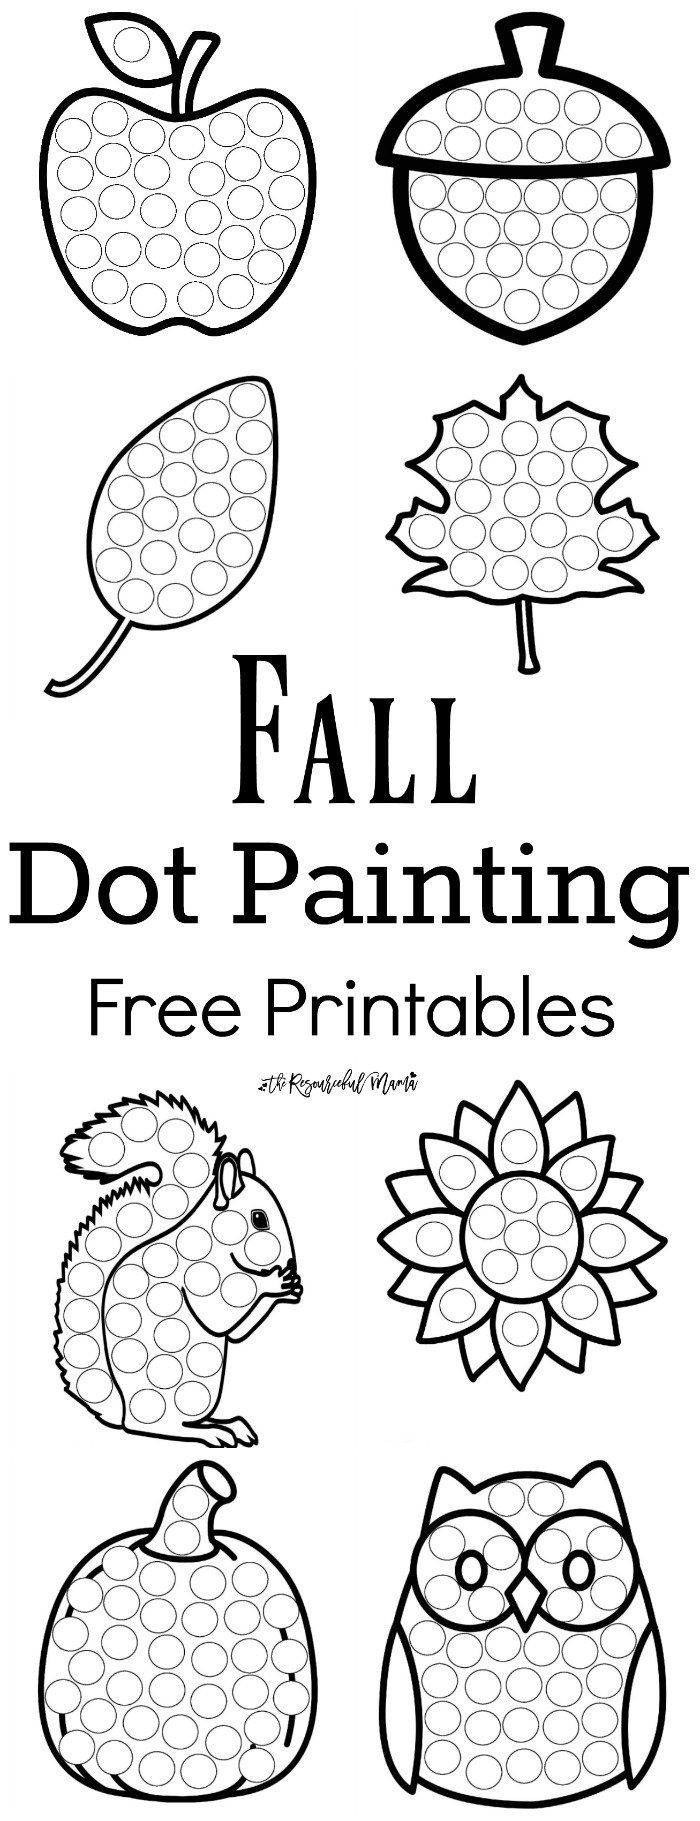 17 Best ideas about Toddler Painting Activities on